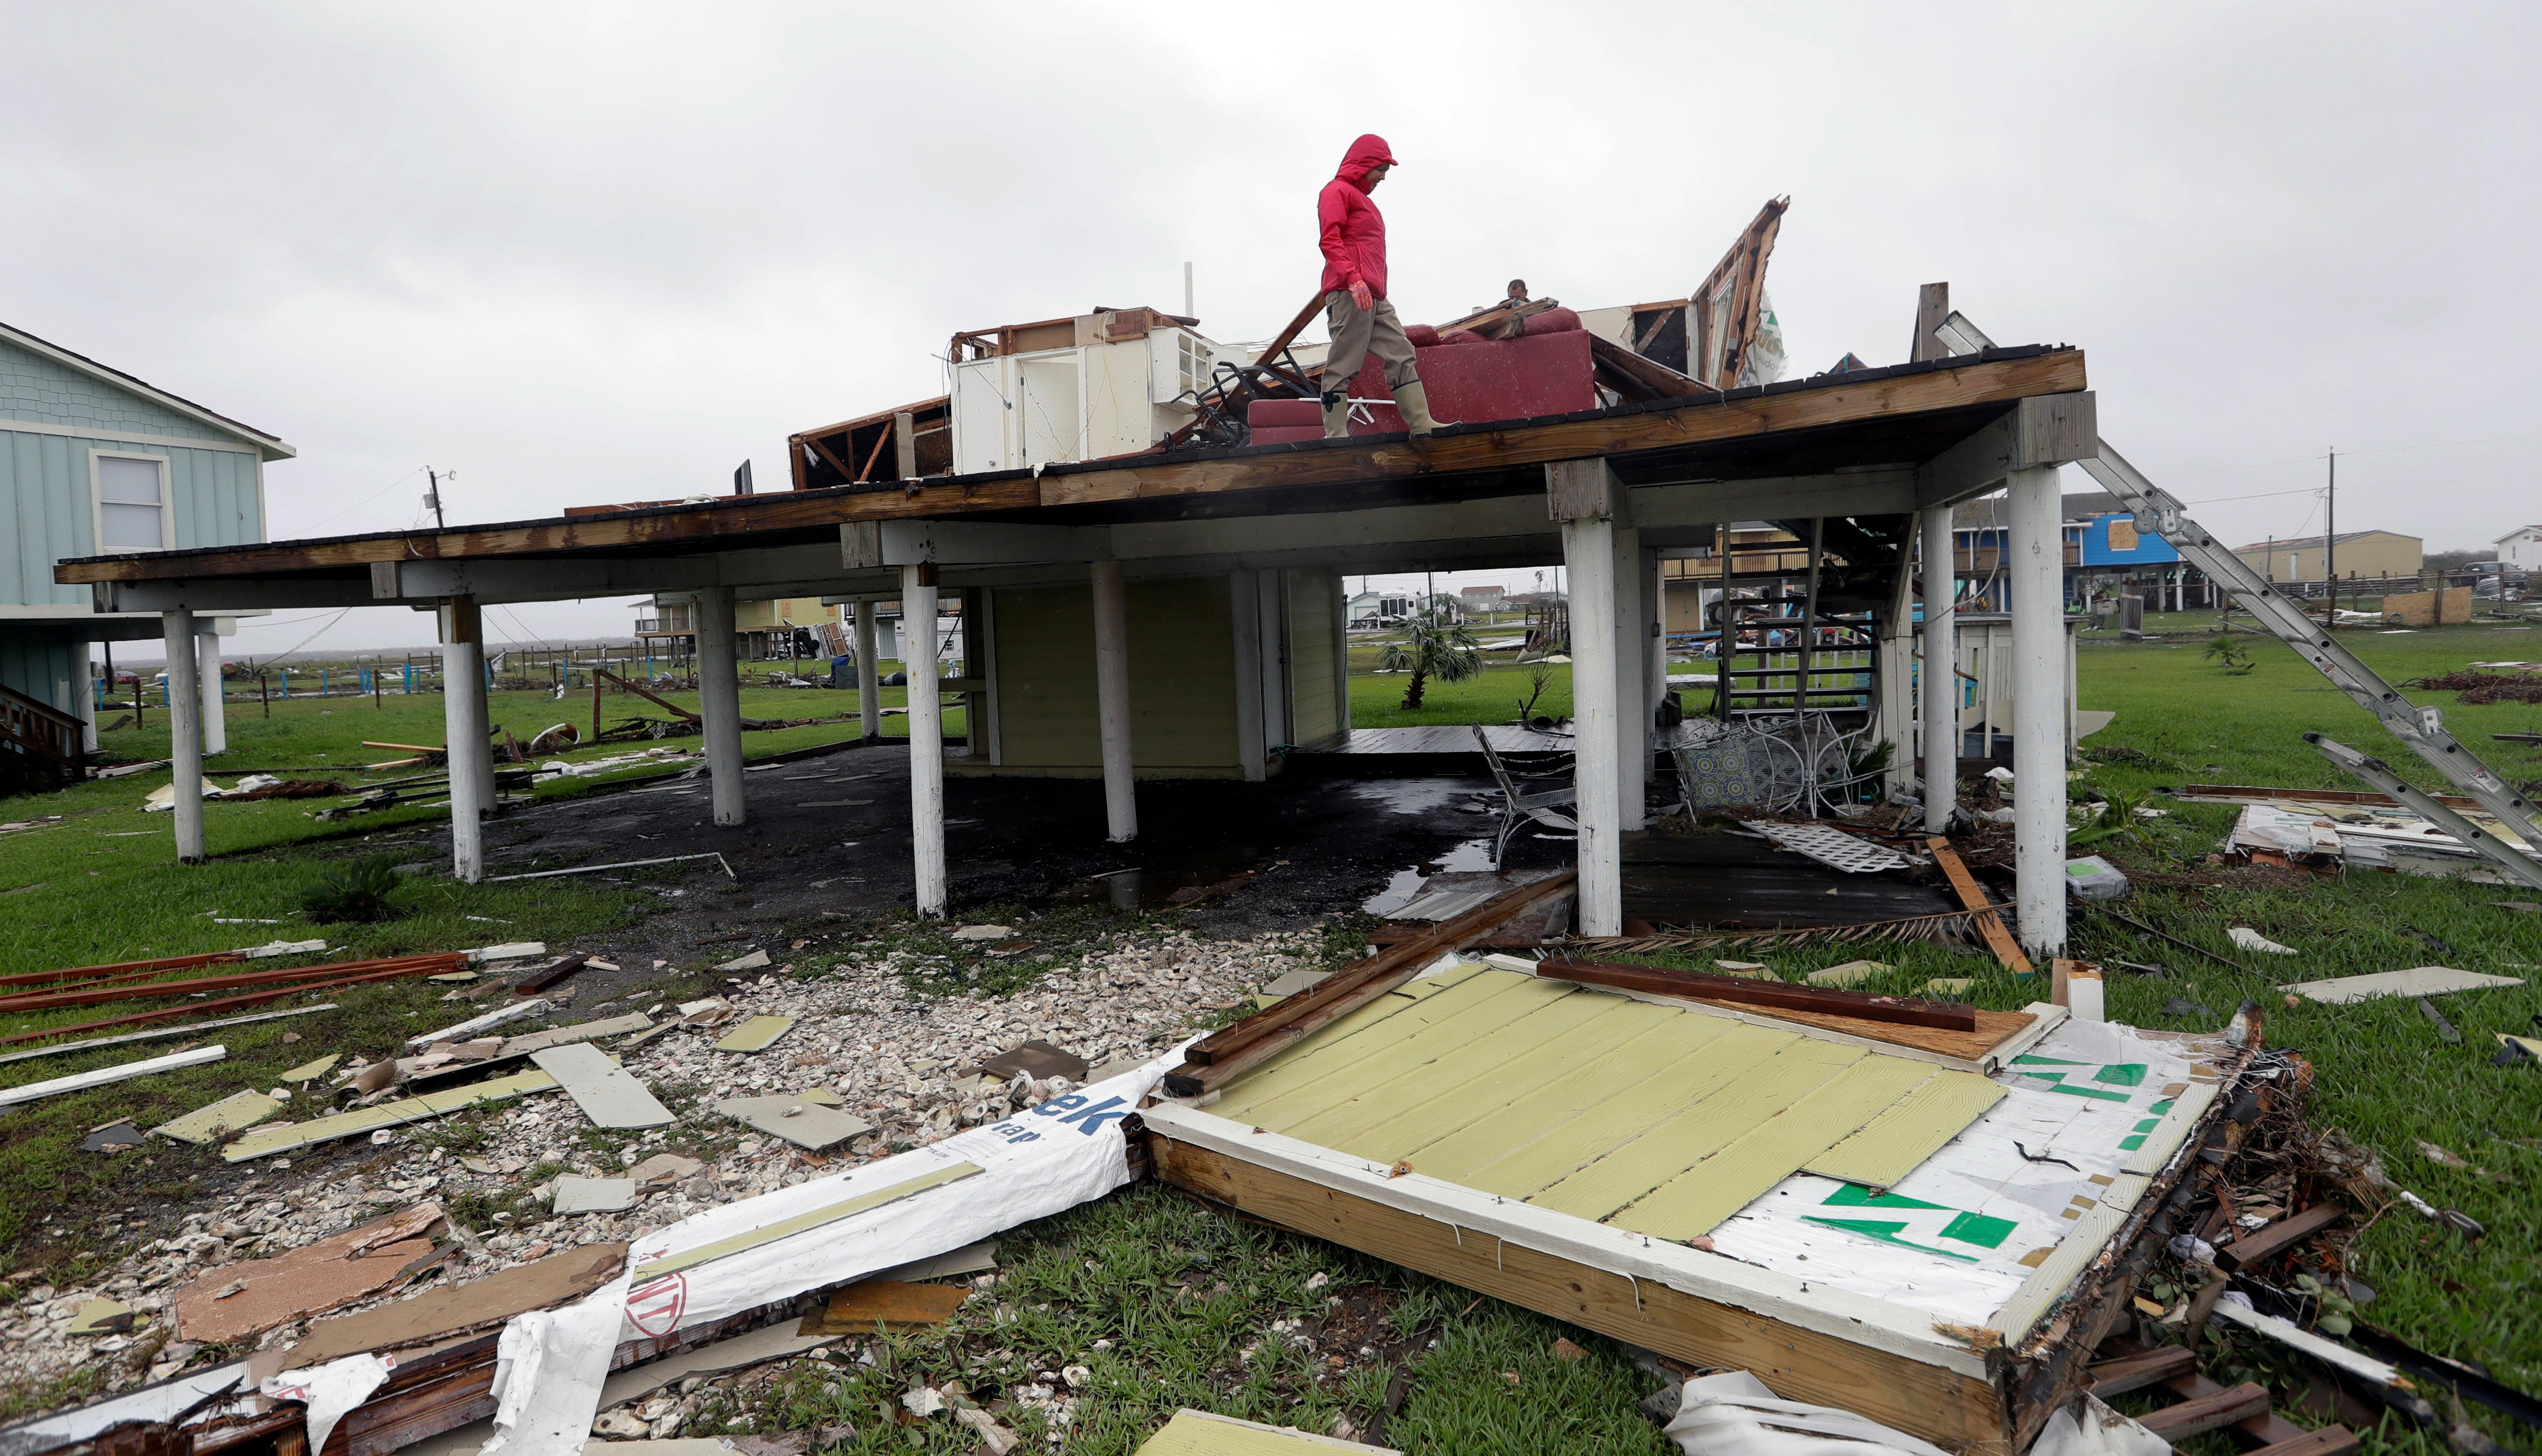 Evelyn Perkins inspects her home which was destroyed in the wake of Hurricane Harvey, Monday, Aug. 28, 2017, in Rockport, Texas. (AP Photo/Eric Gay)